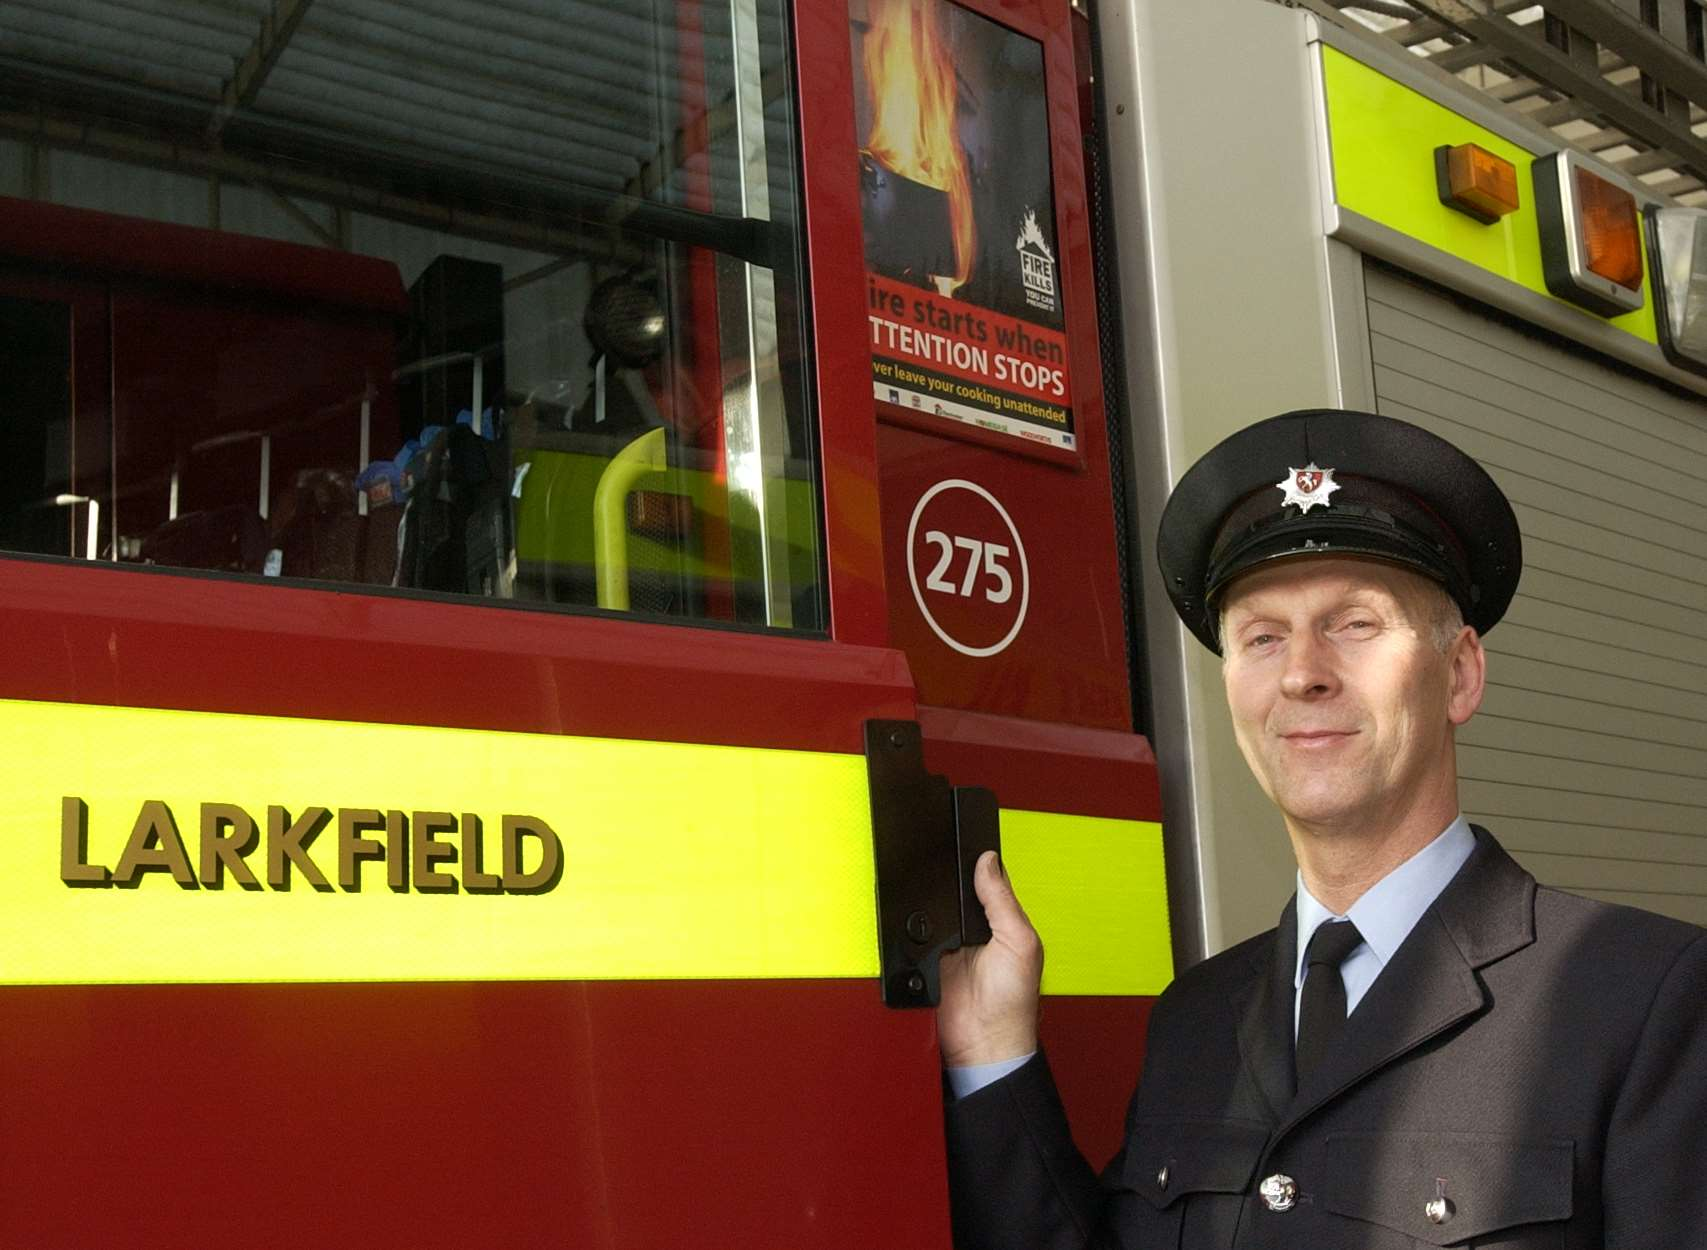 Gary Cook, from Larkfield, retired as a retained firefighter in 2003